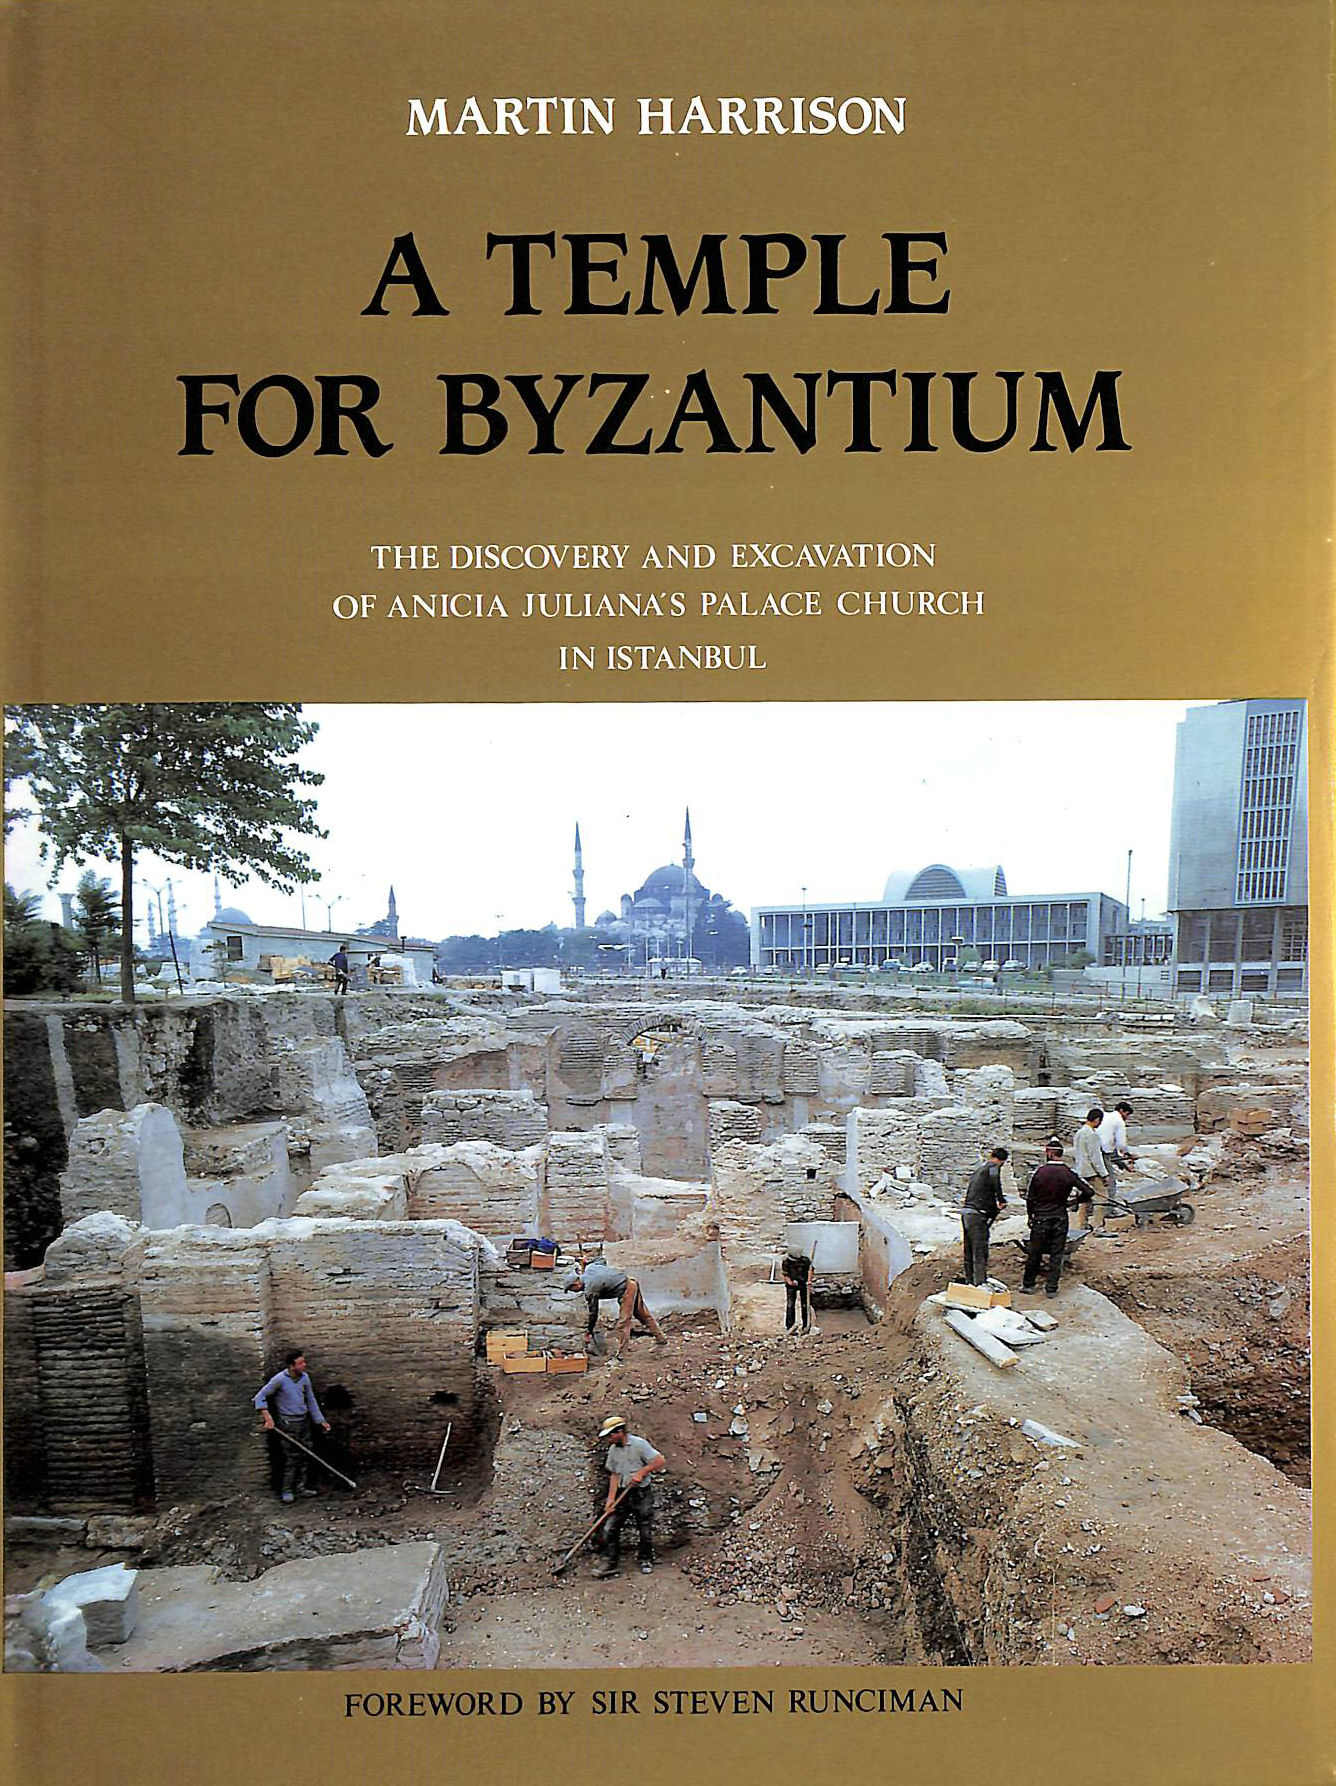 Image for A Temple for Byzantium: Discovery and Excavation of Anicia Juliana's Palace Church in Istanbul